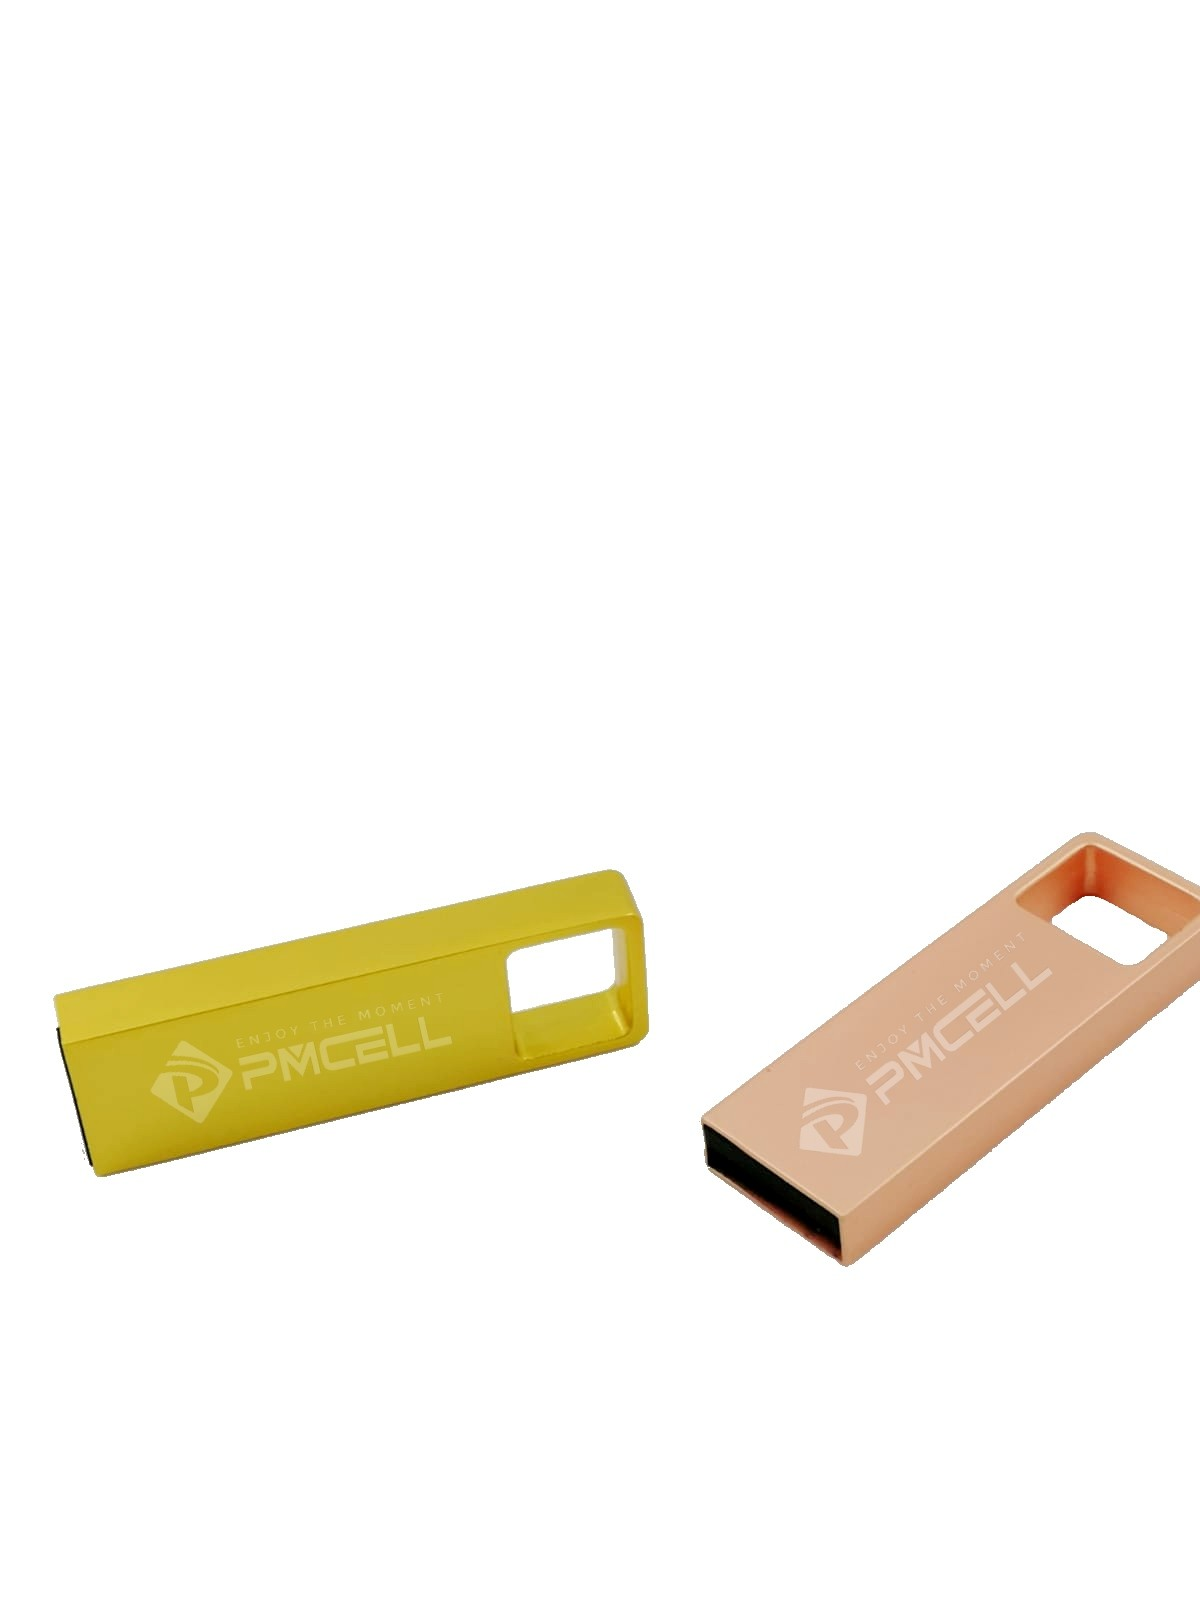 Pendrive | 8GB | PMCELL PN-22